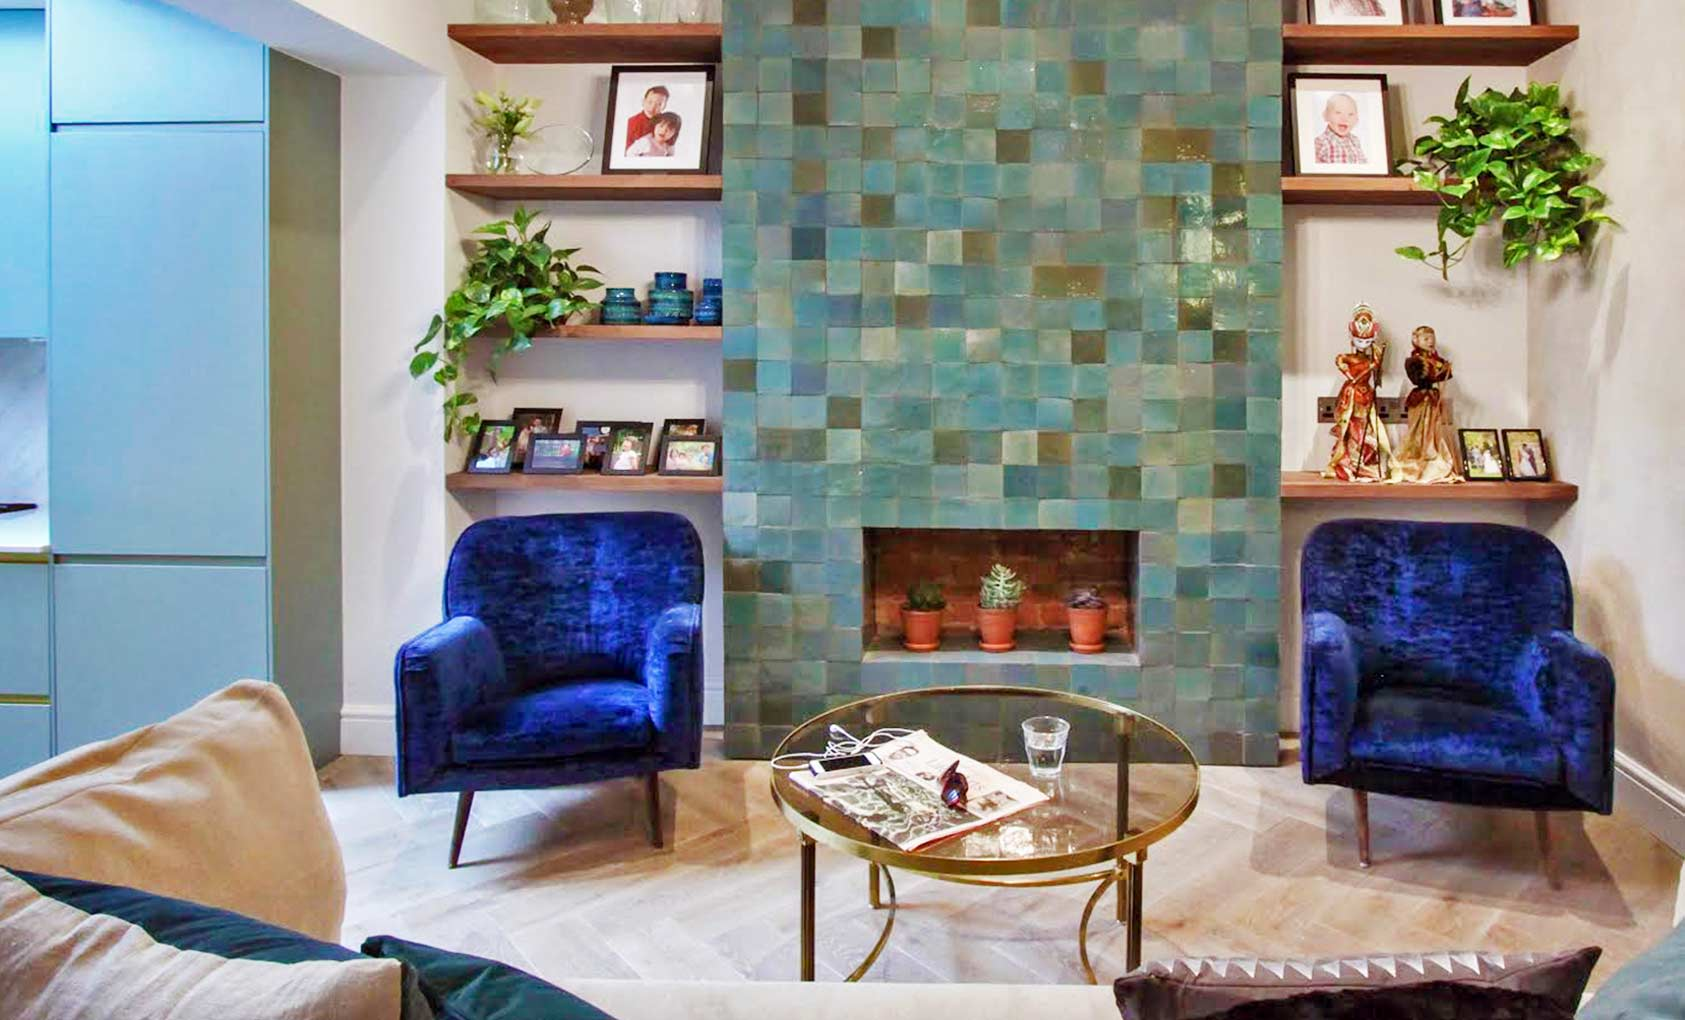 A Speedy Renovation in London Honors Its Owner's Her-story, Design*Sponge